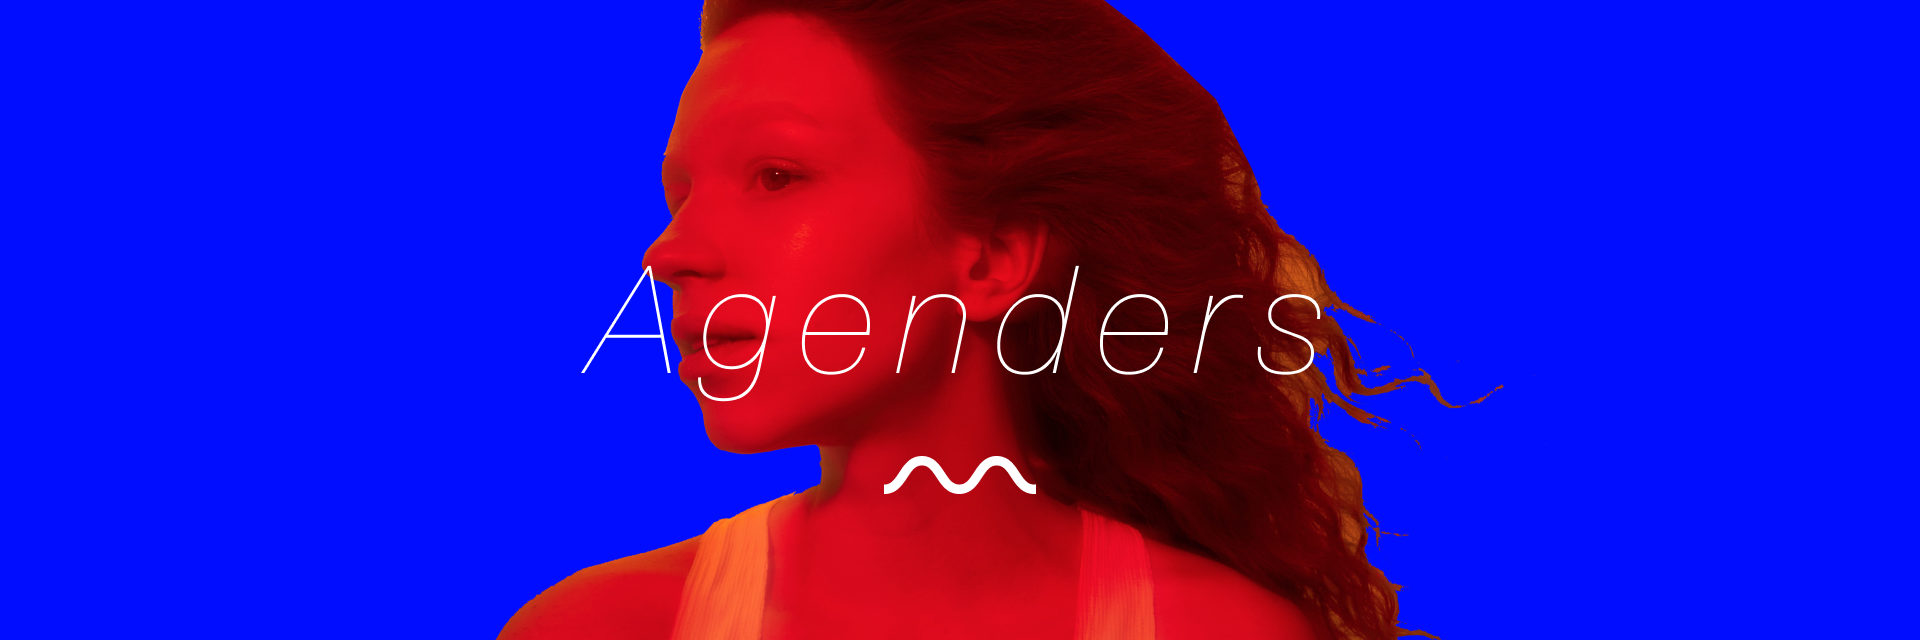 Agenders — Fifteen Musicians on the Importance of Gender (If Any) in Artwork and Life — Mubert Blog